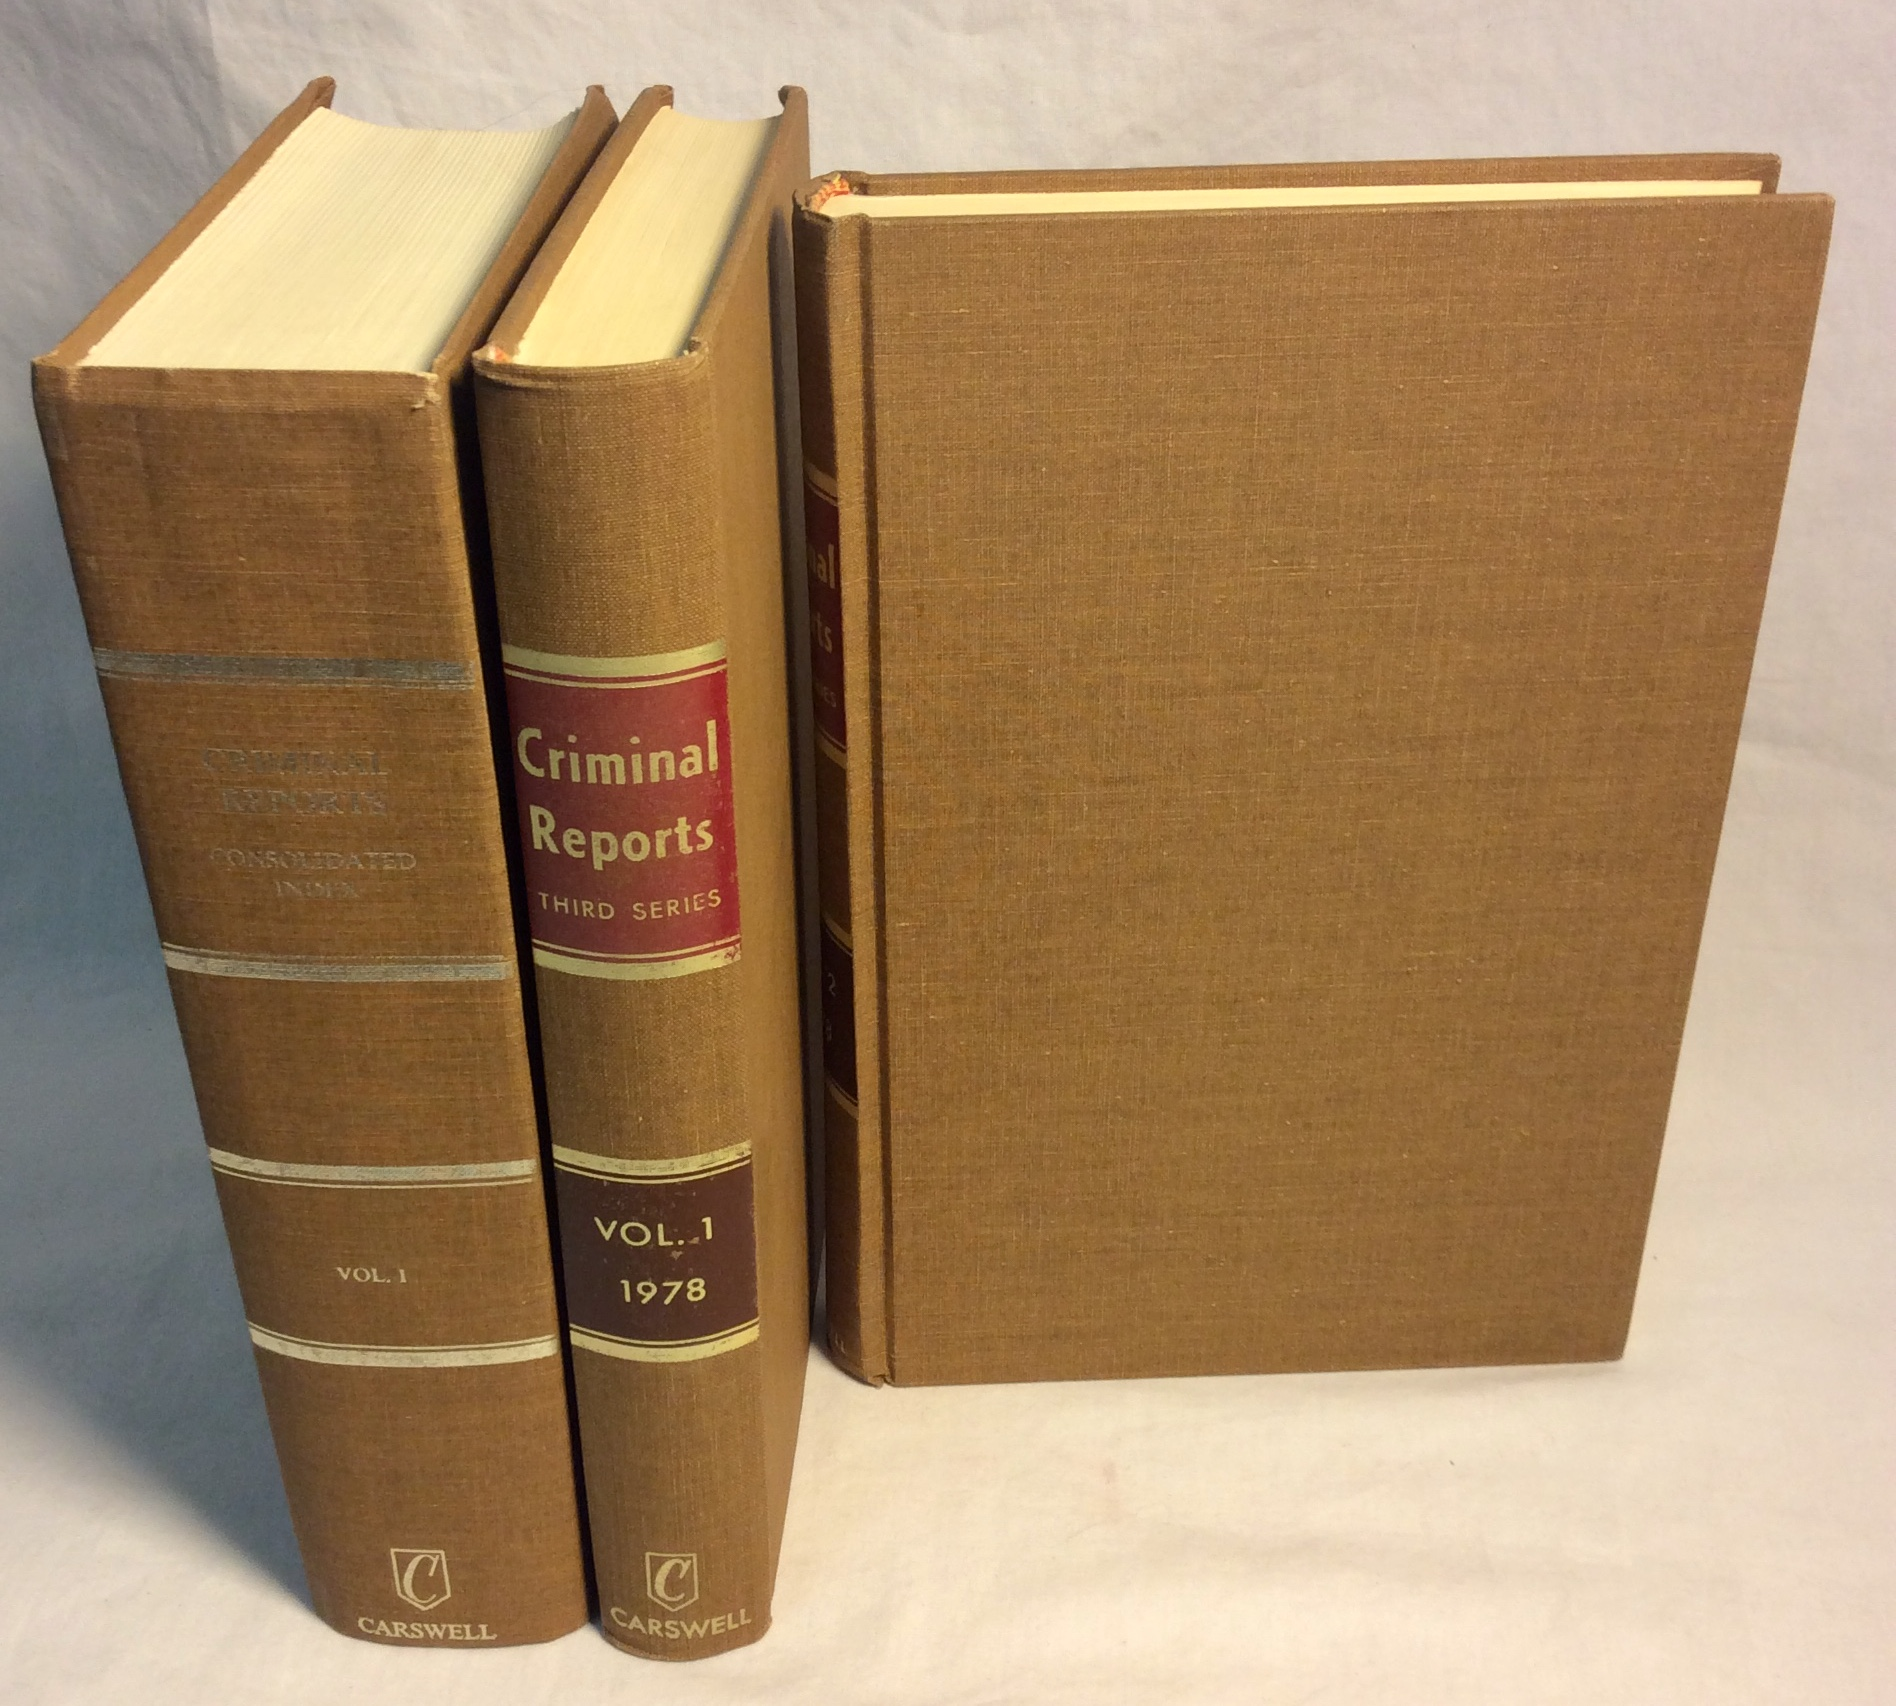 Set of beige hardcover law books